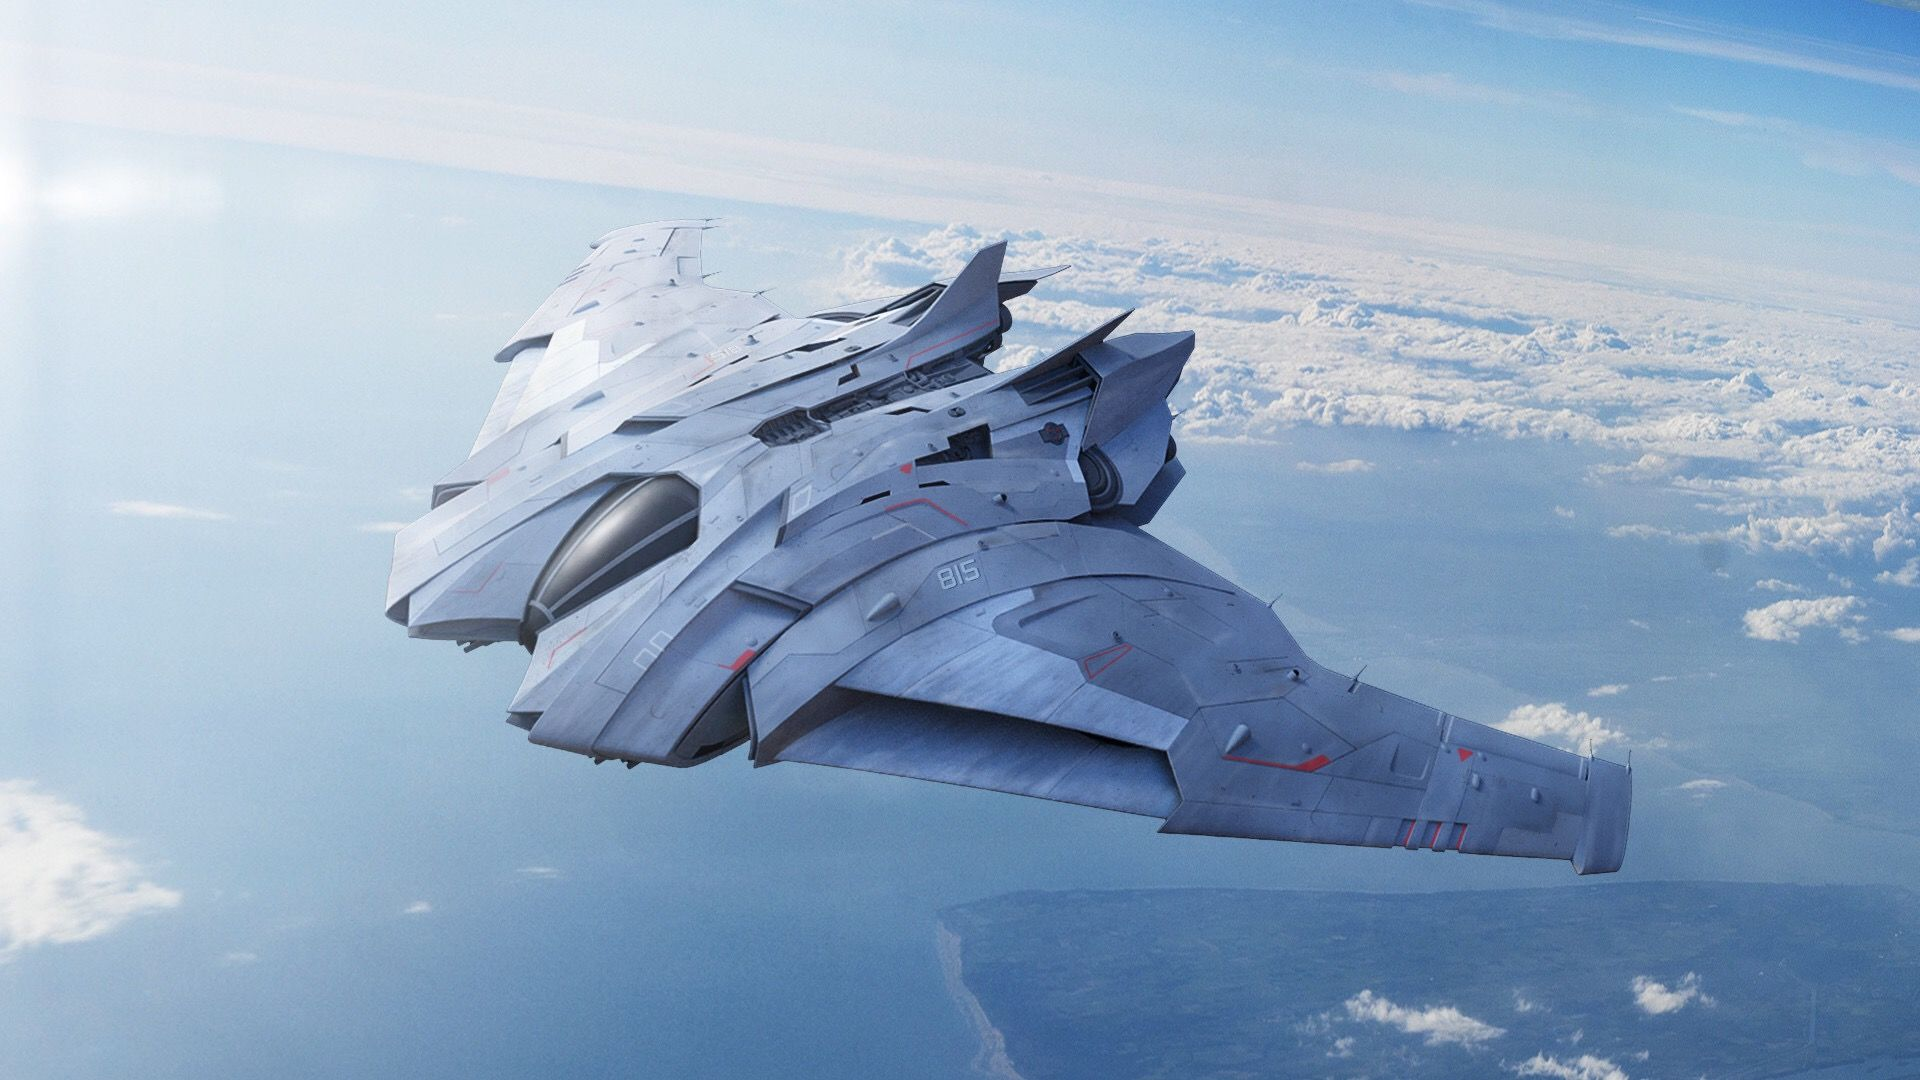 Aircraft concept | Aircraft, Space fighter, Concept ships